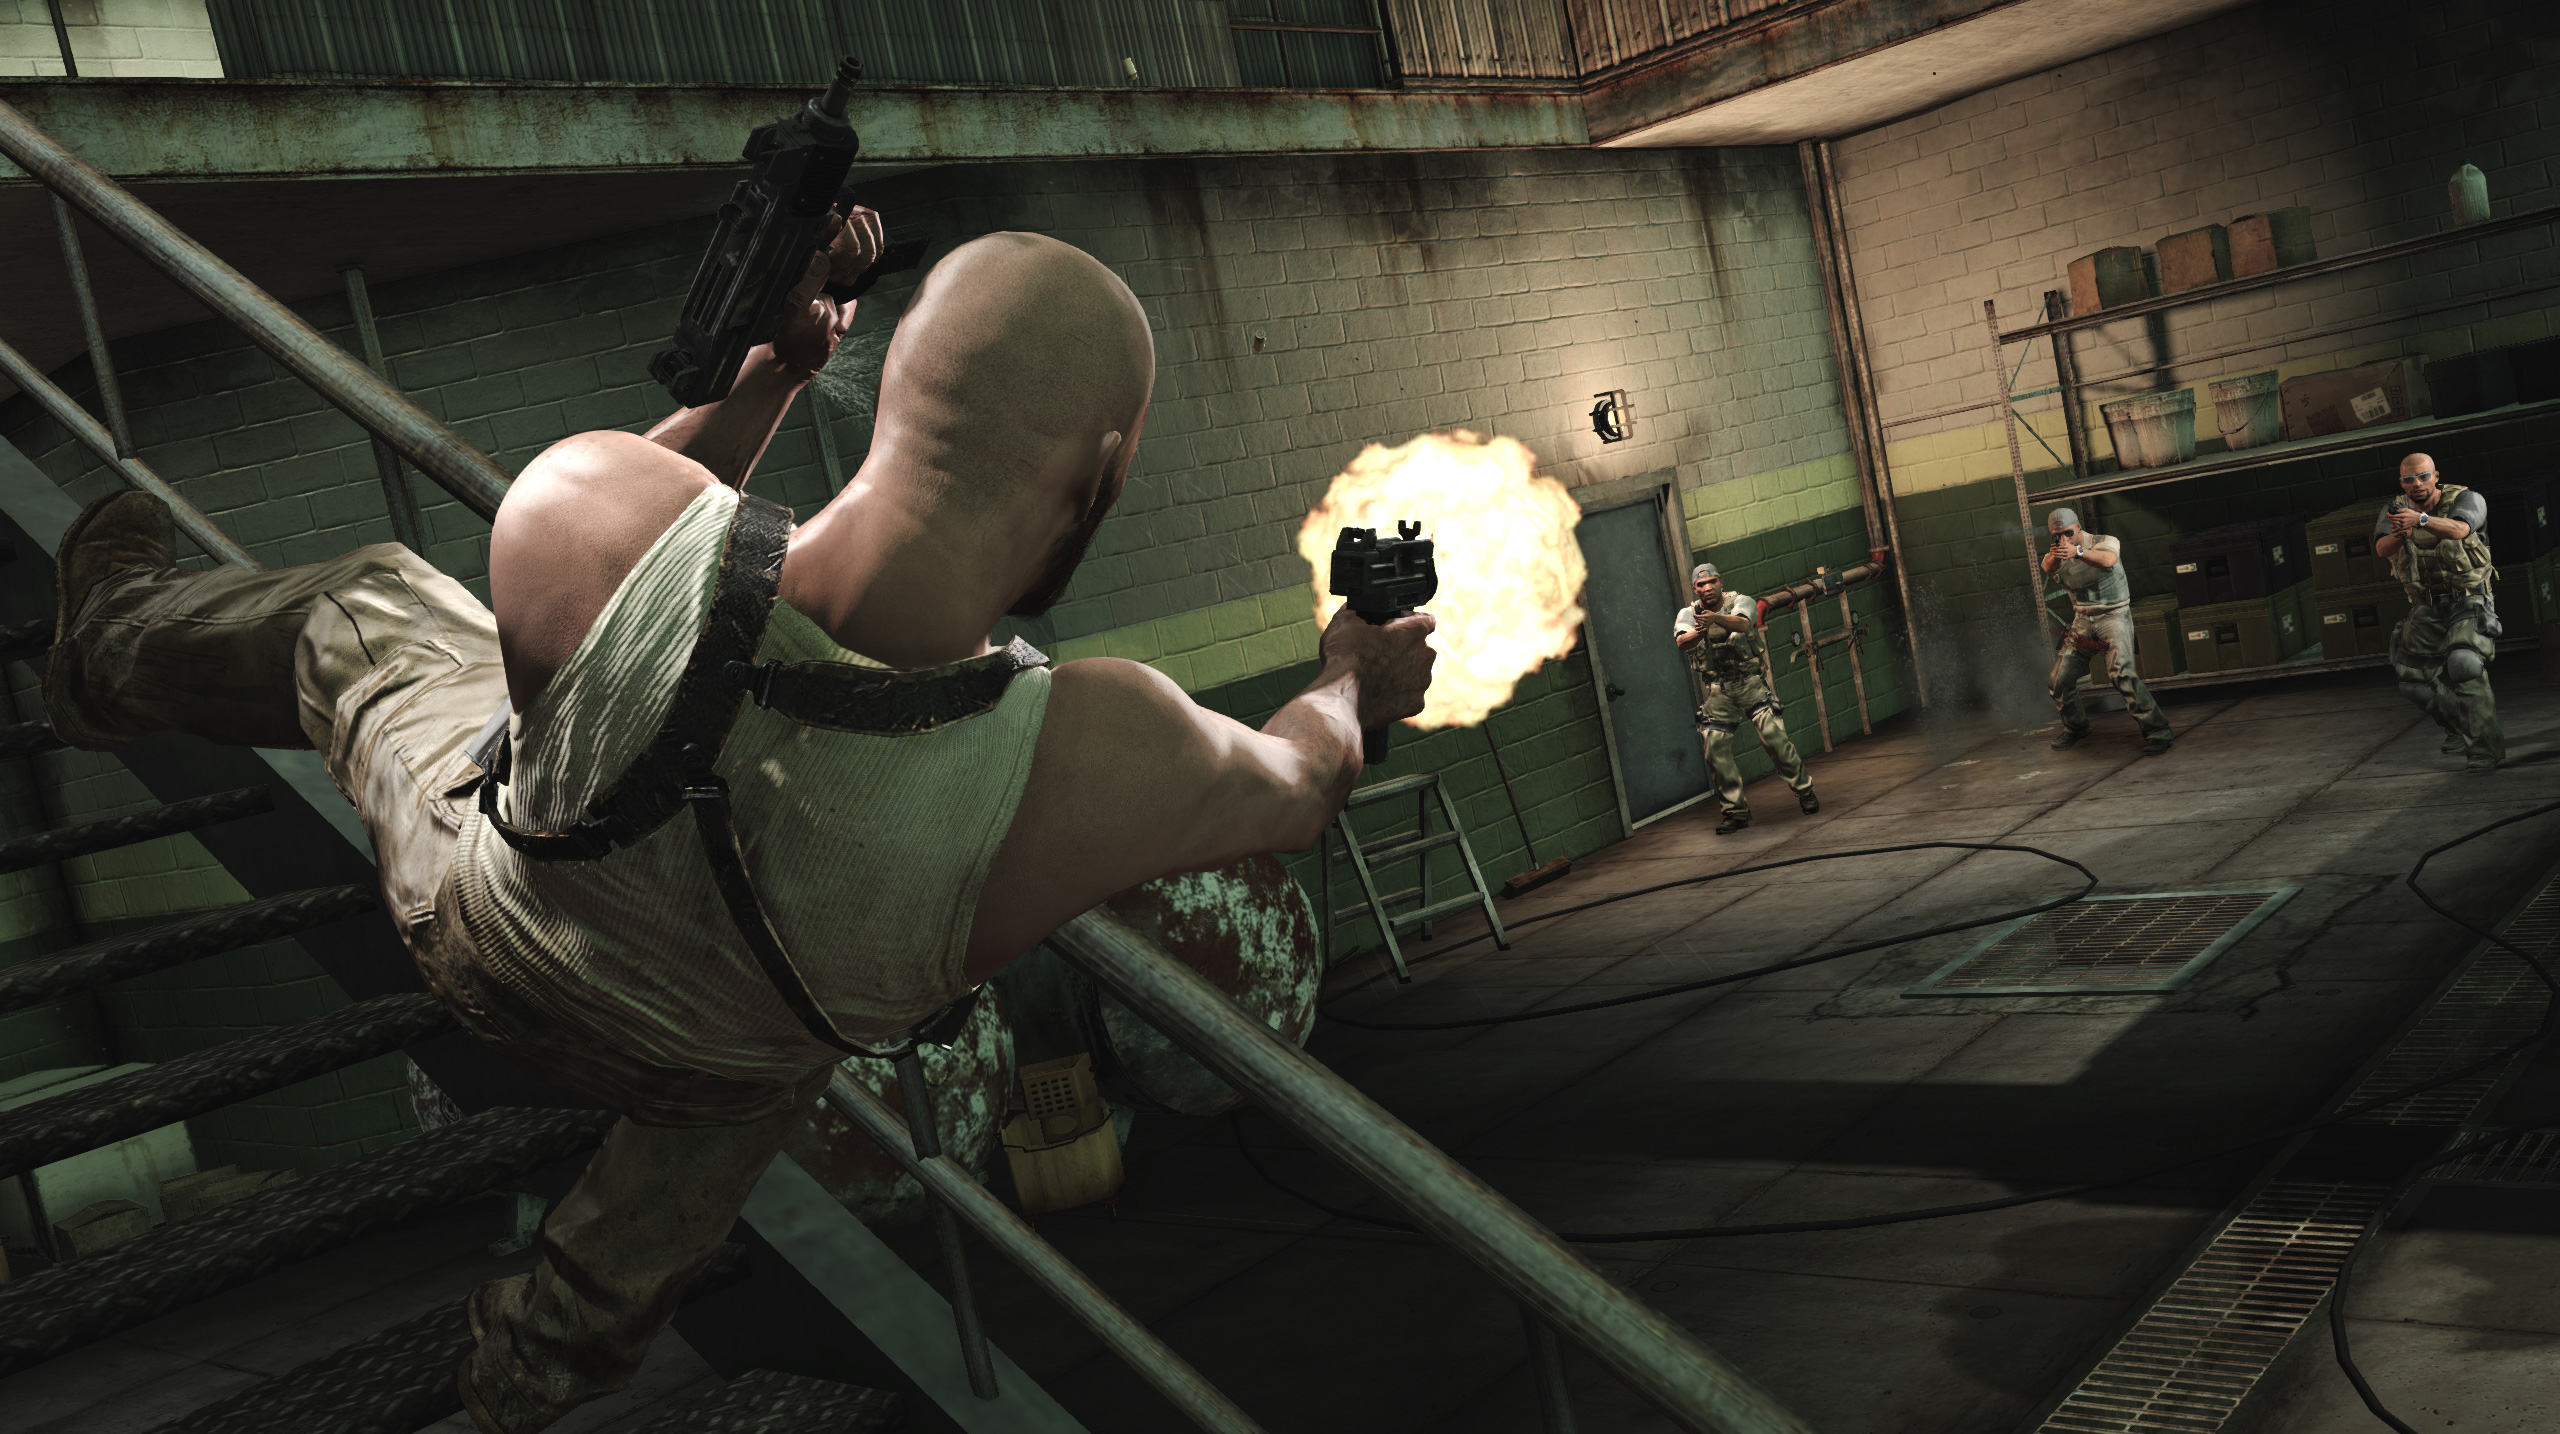 Max Payne 3 Review: Another Day, Another Bullet